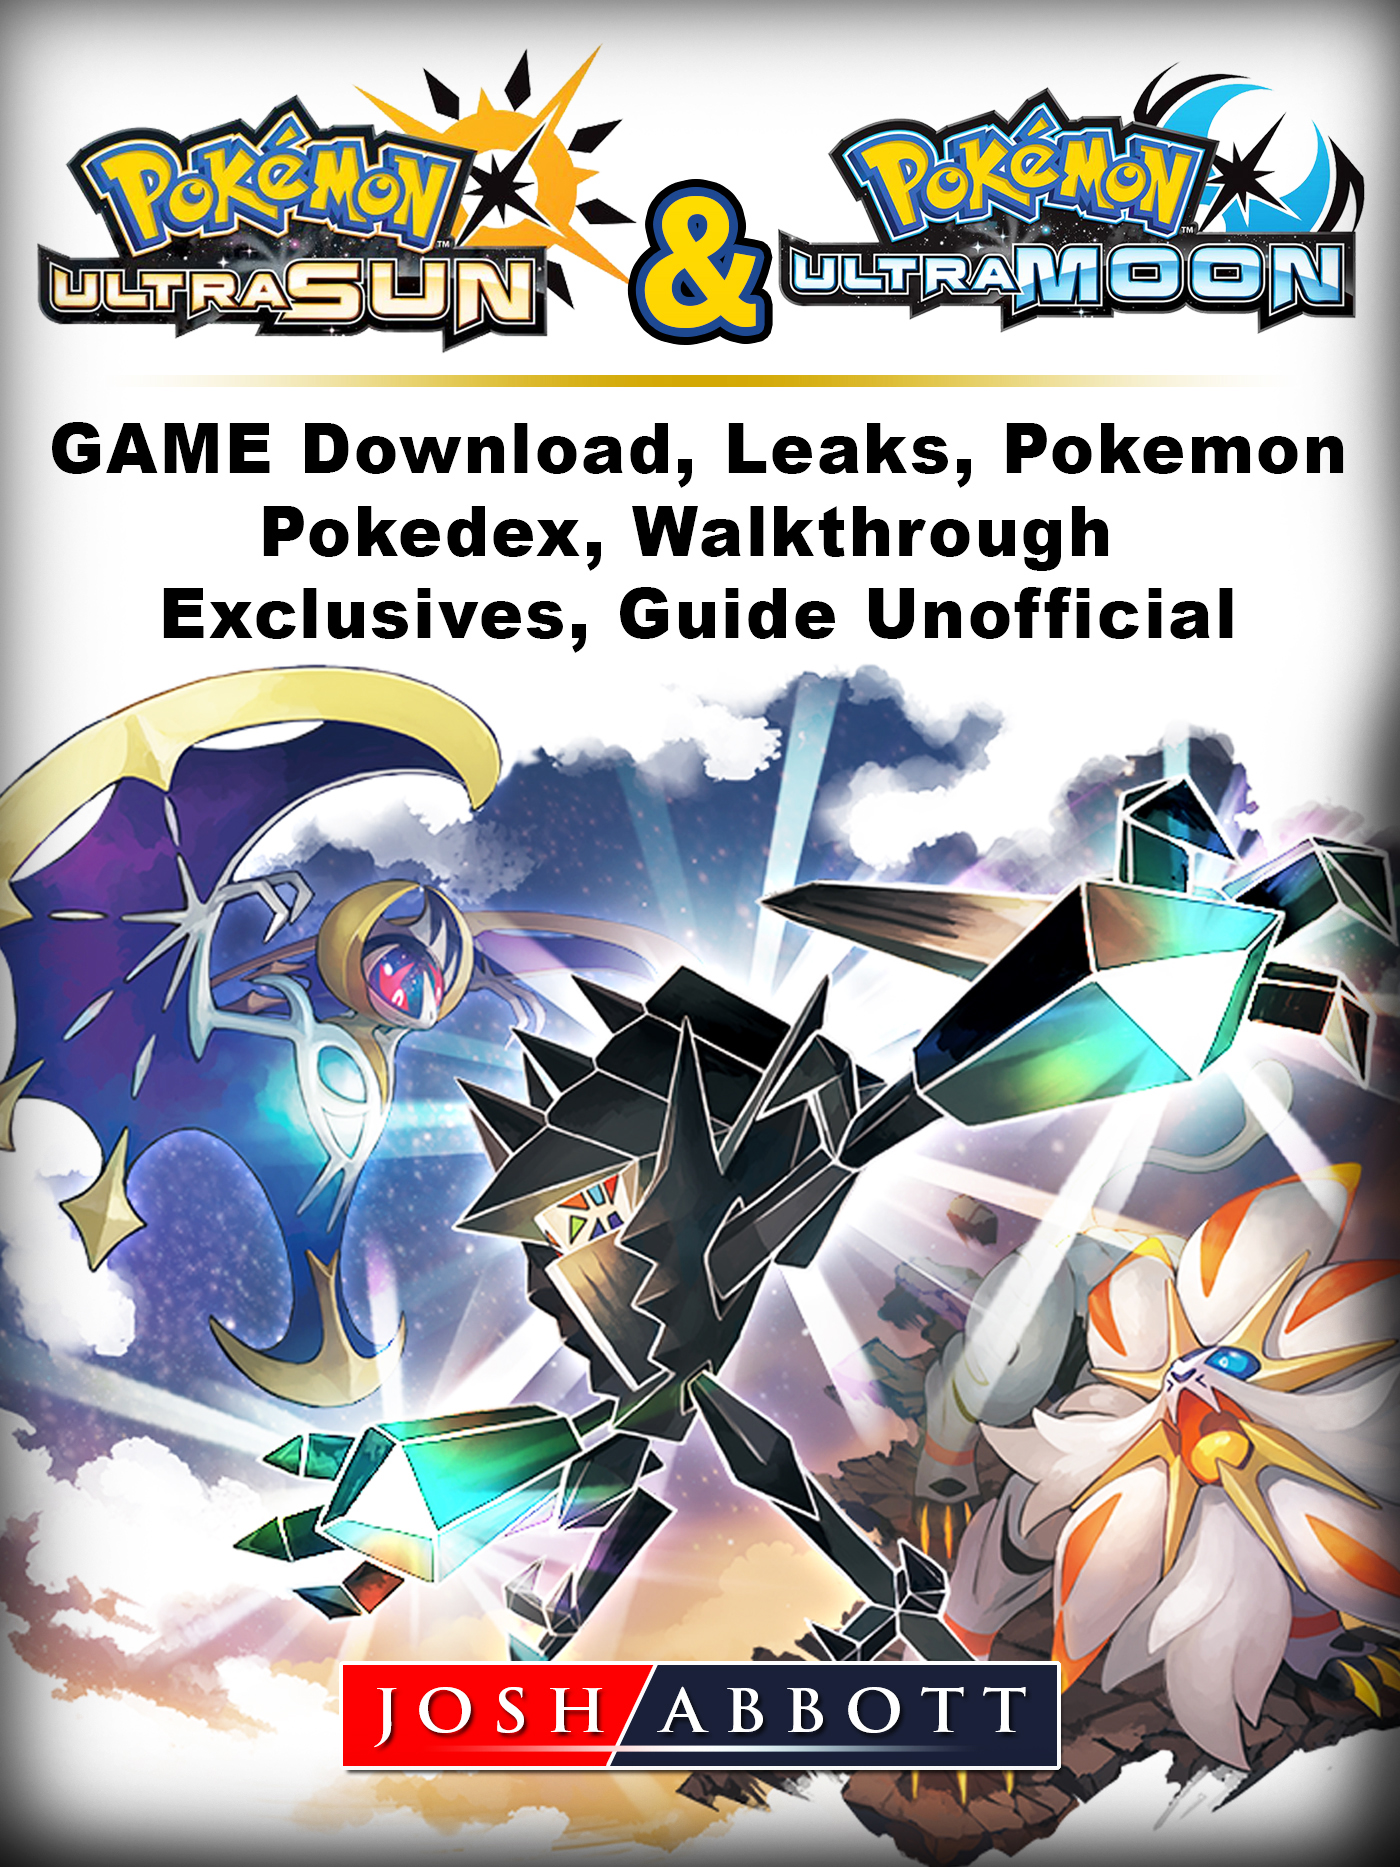 Pokemon Ultra Sun and Ultra Moon Game Download, Leaks, Pokemon, Pokedex, Walkthrough, Exclusives, Guide Unofficial By Josh Abbott